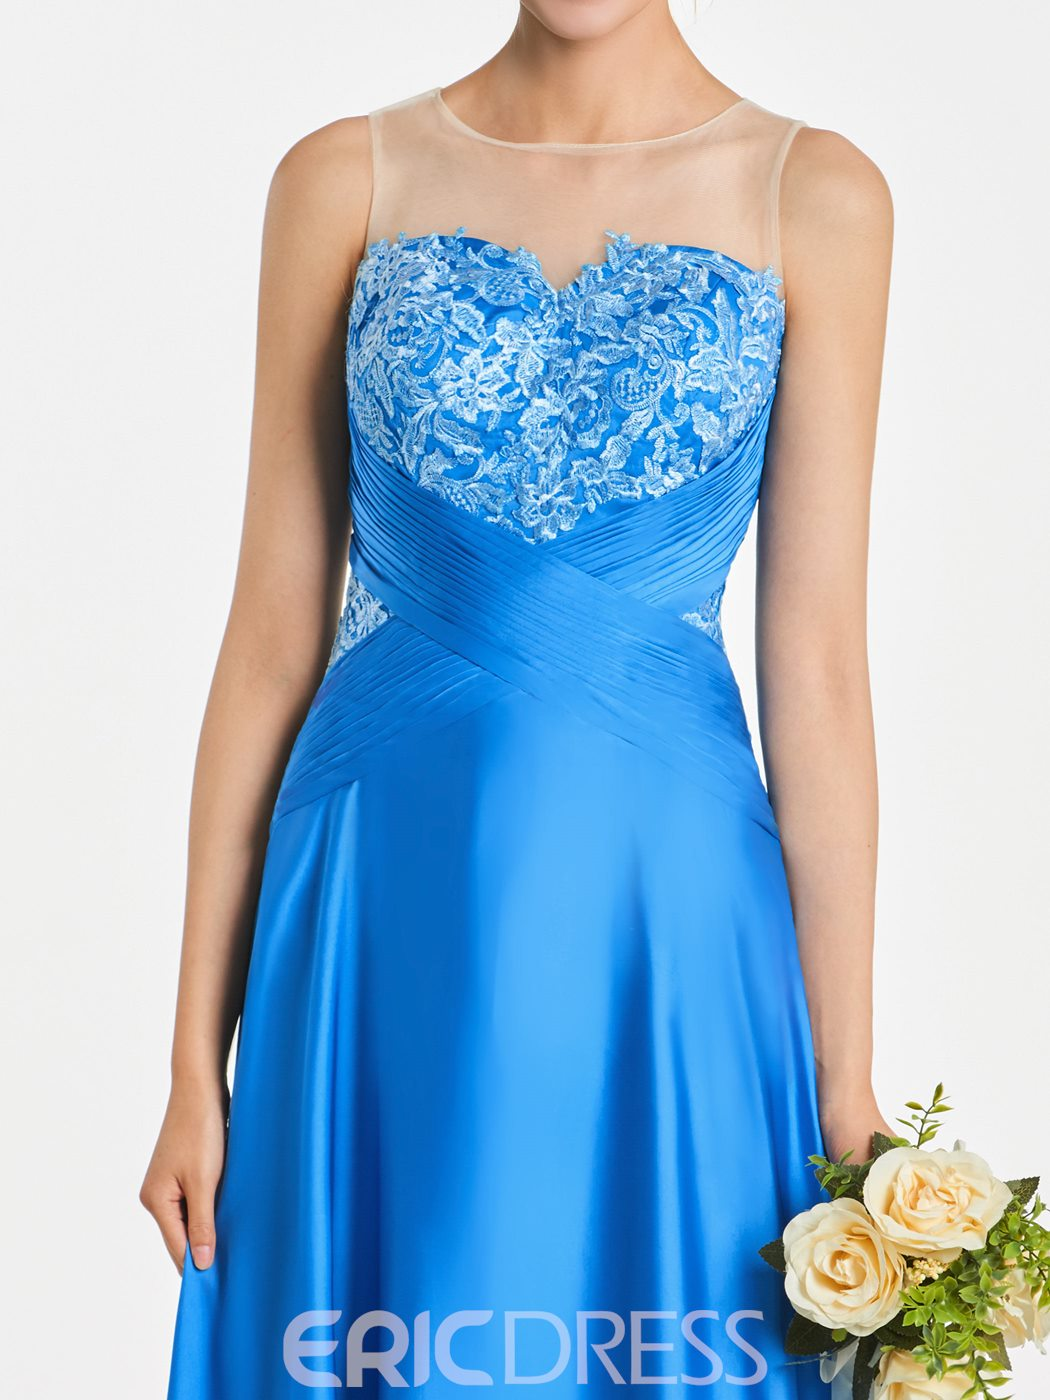 Ericdress Illusion Neckline Appliques A Line Long Bridesmaid Dress